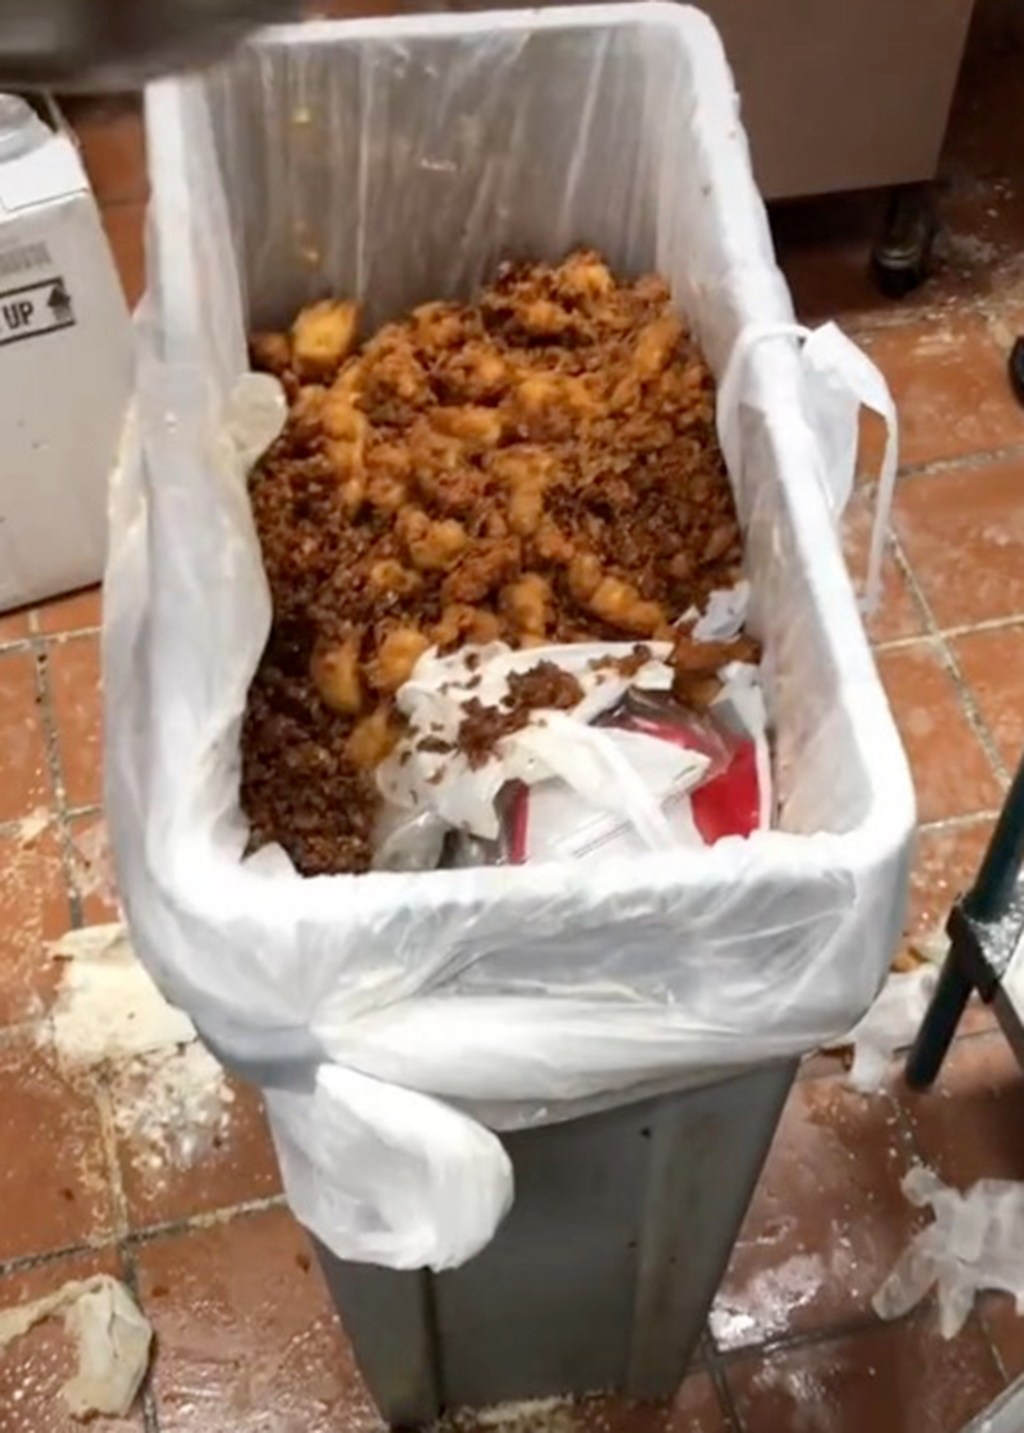 Chick-fil-A worker exposes chain's food waste